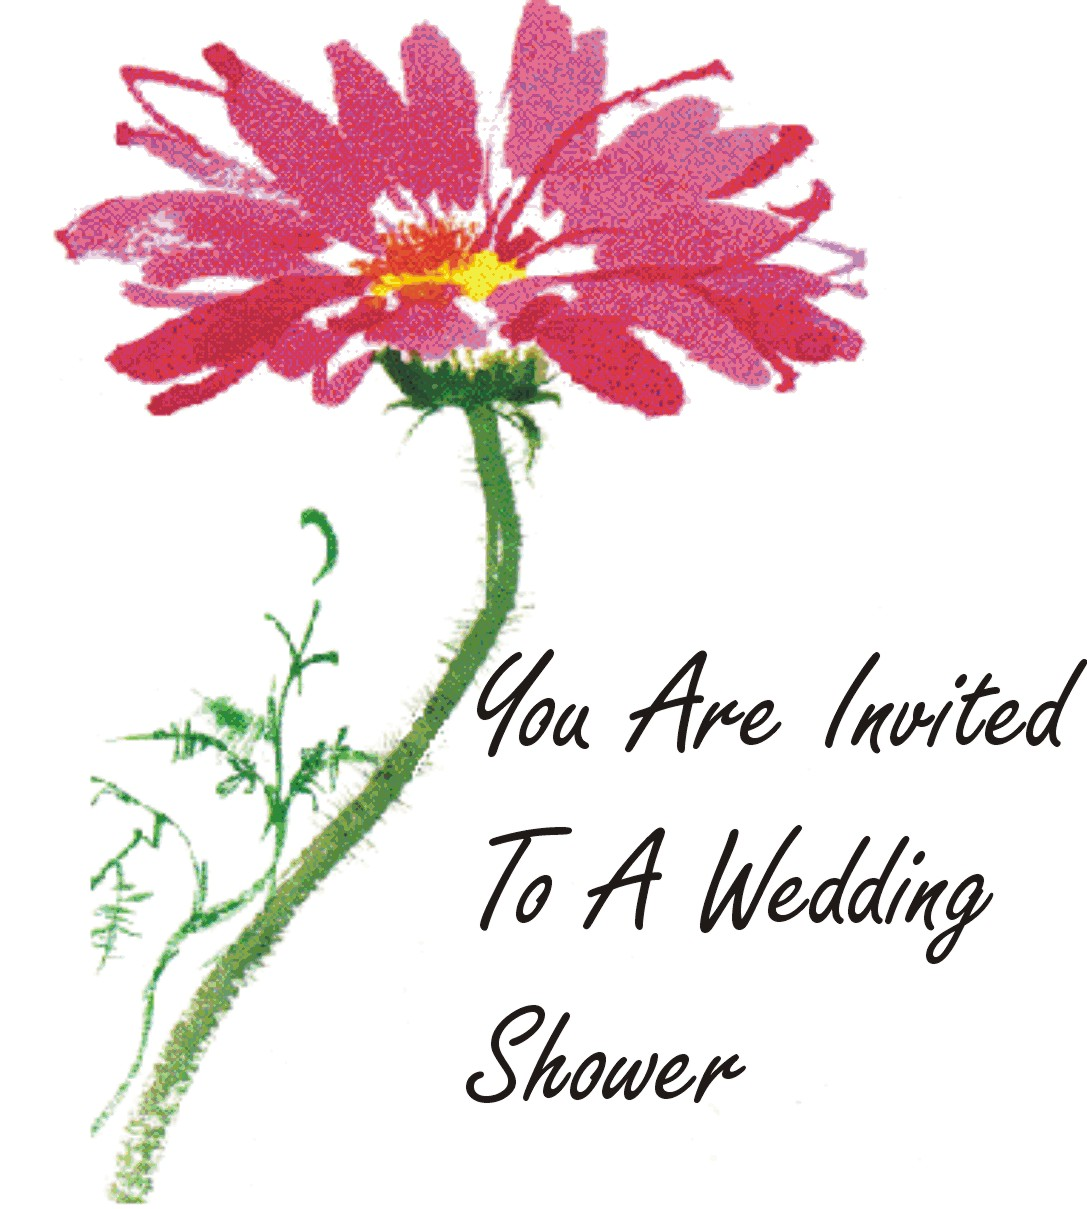 Wedding Shower For Two Women